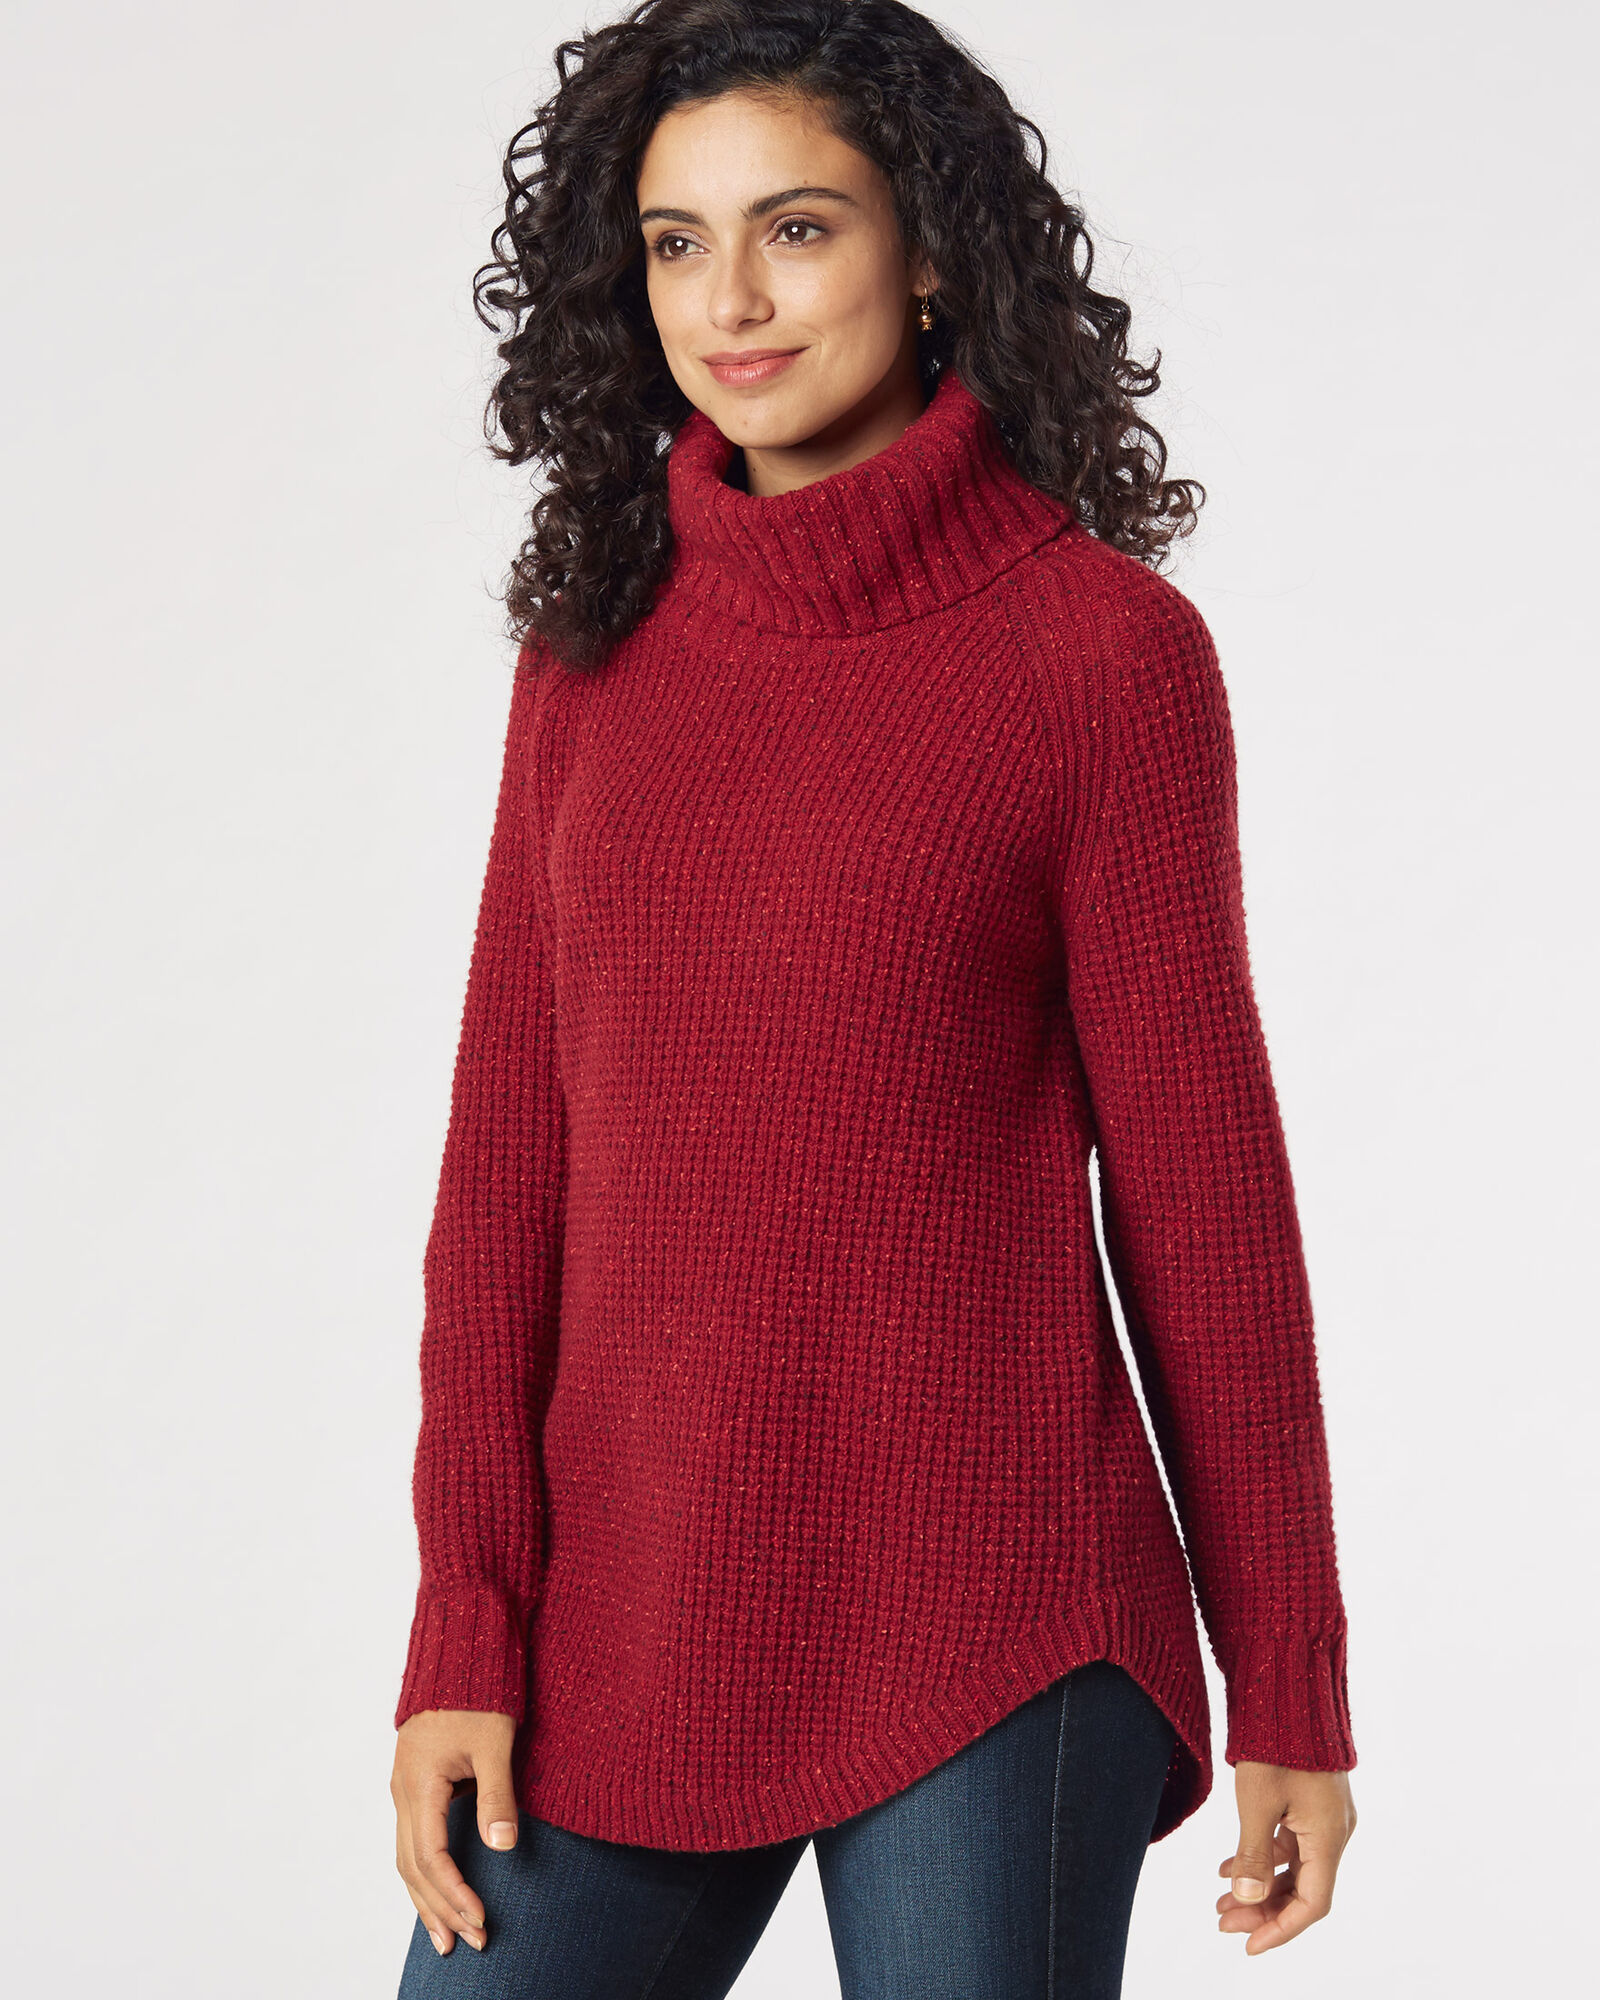 Donegal Cowl Neck Sweater Pendleton